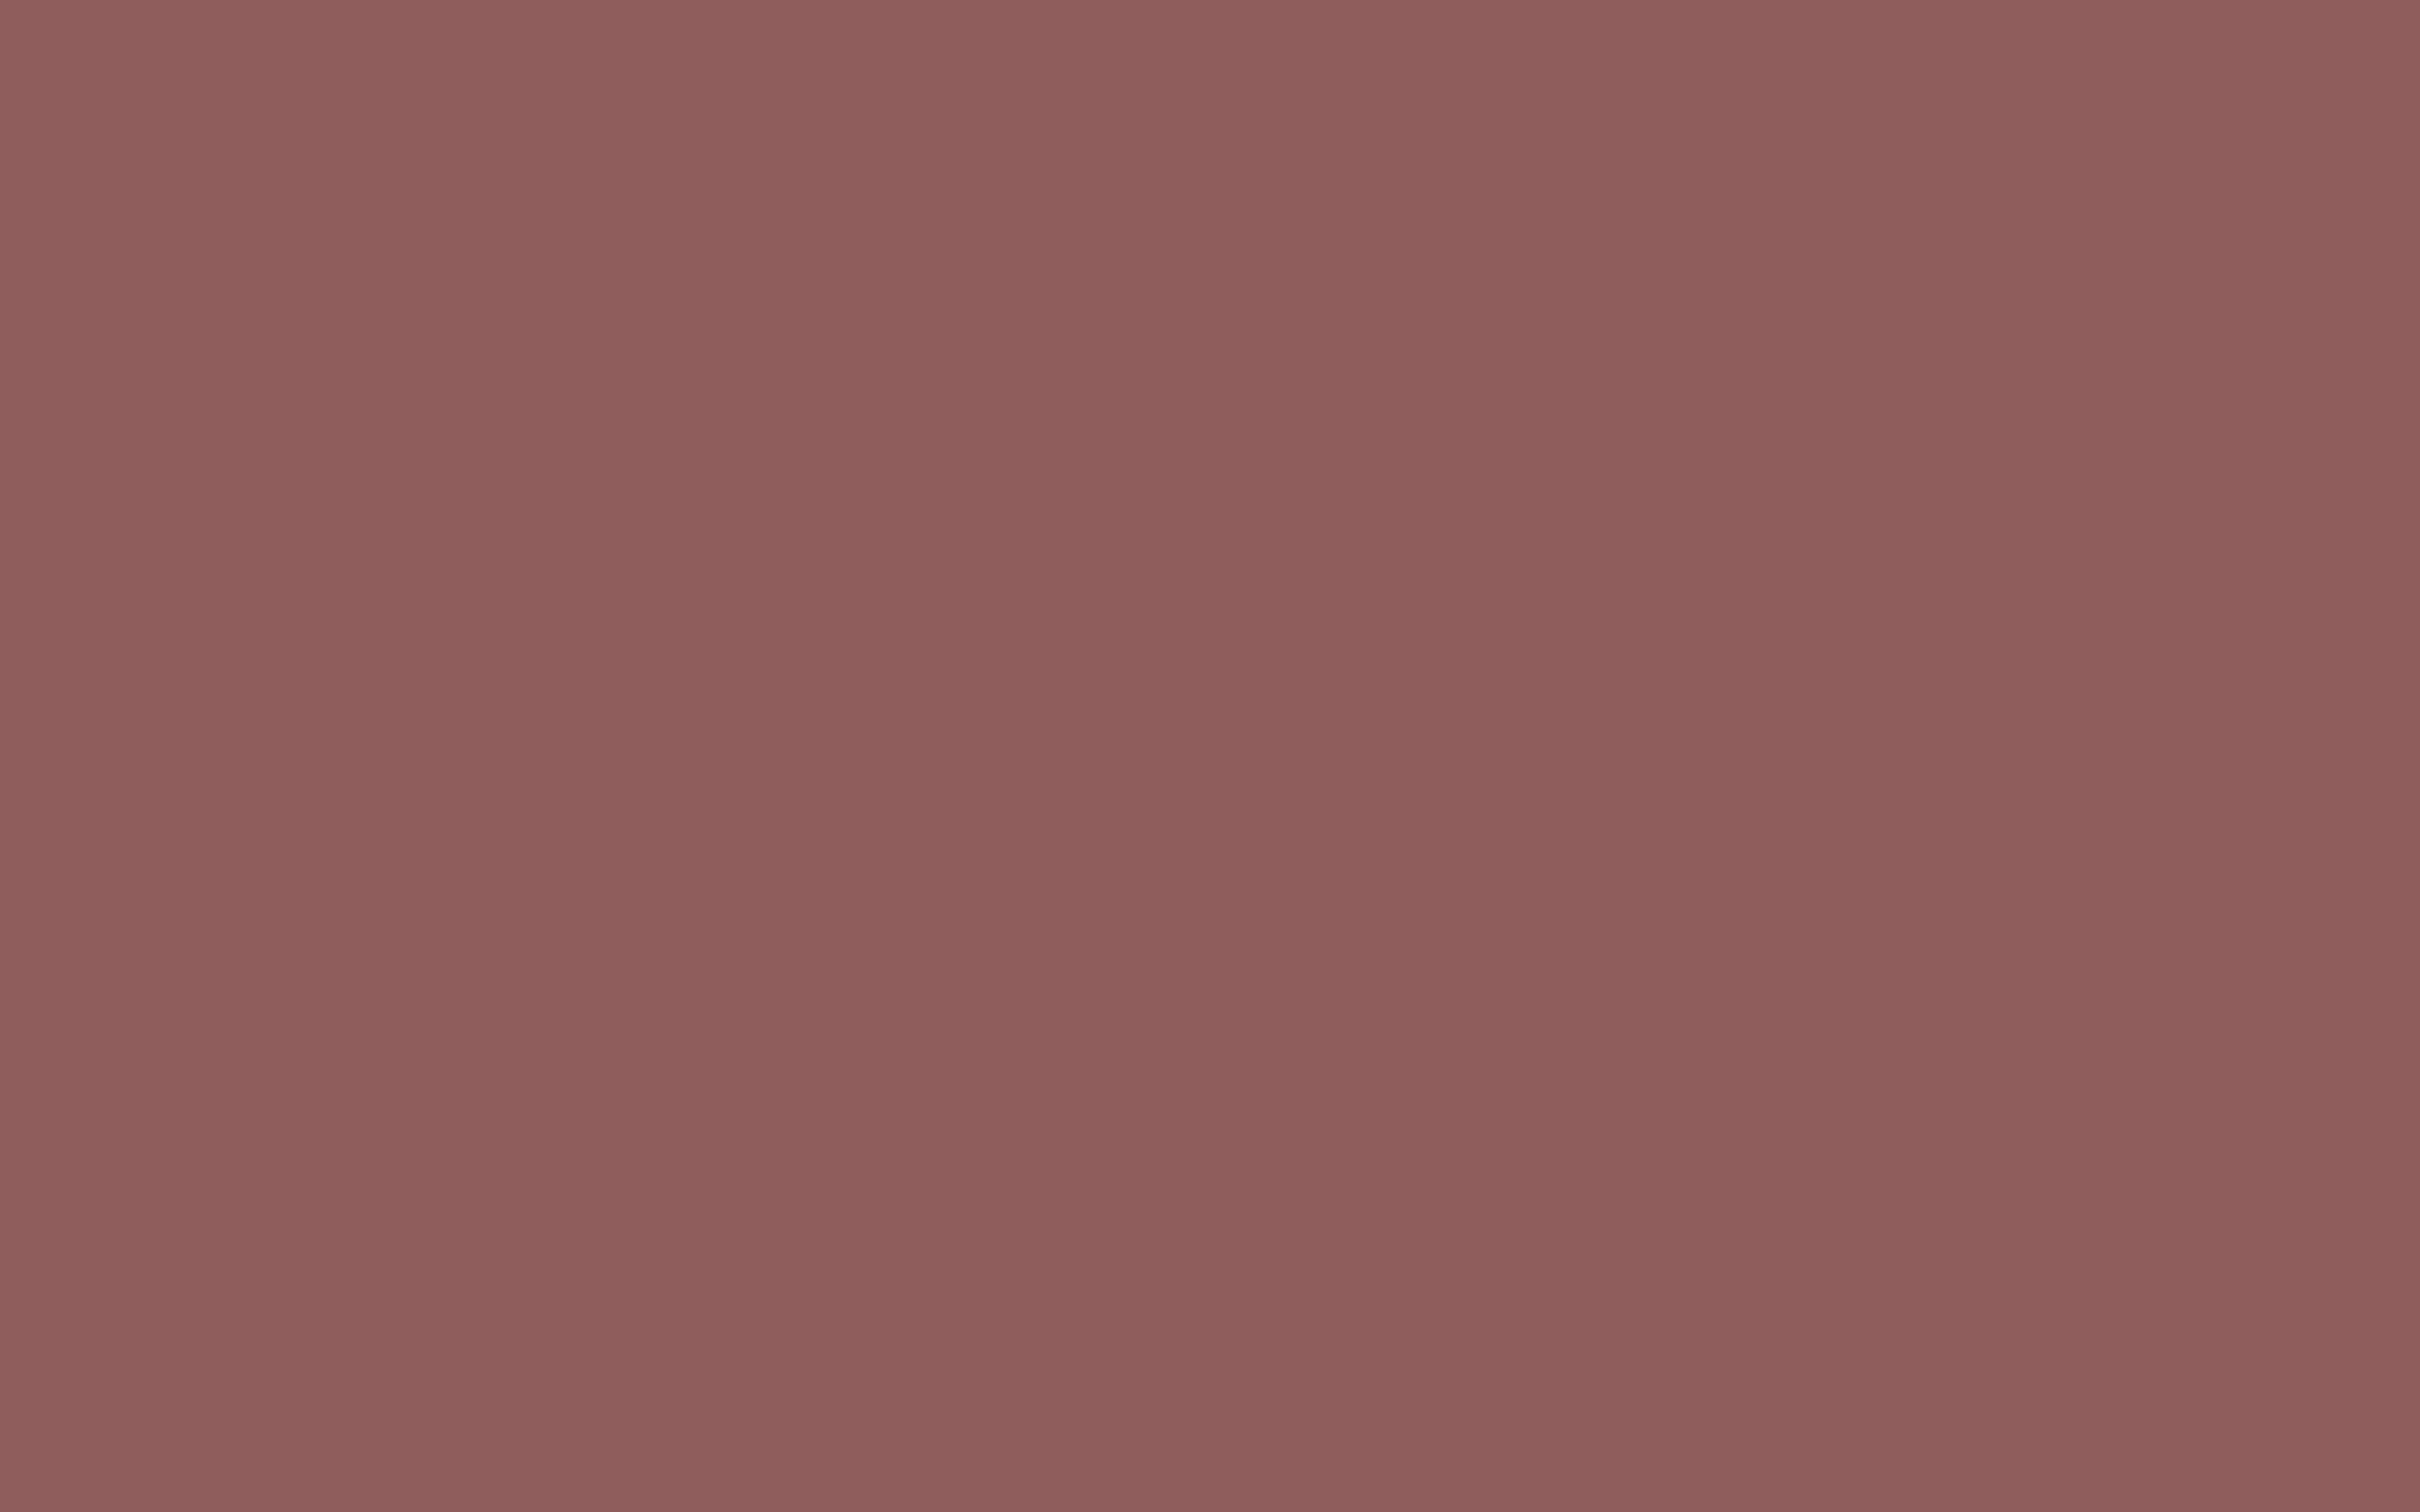 2560x1600 Rose Taupe Solid Color Background